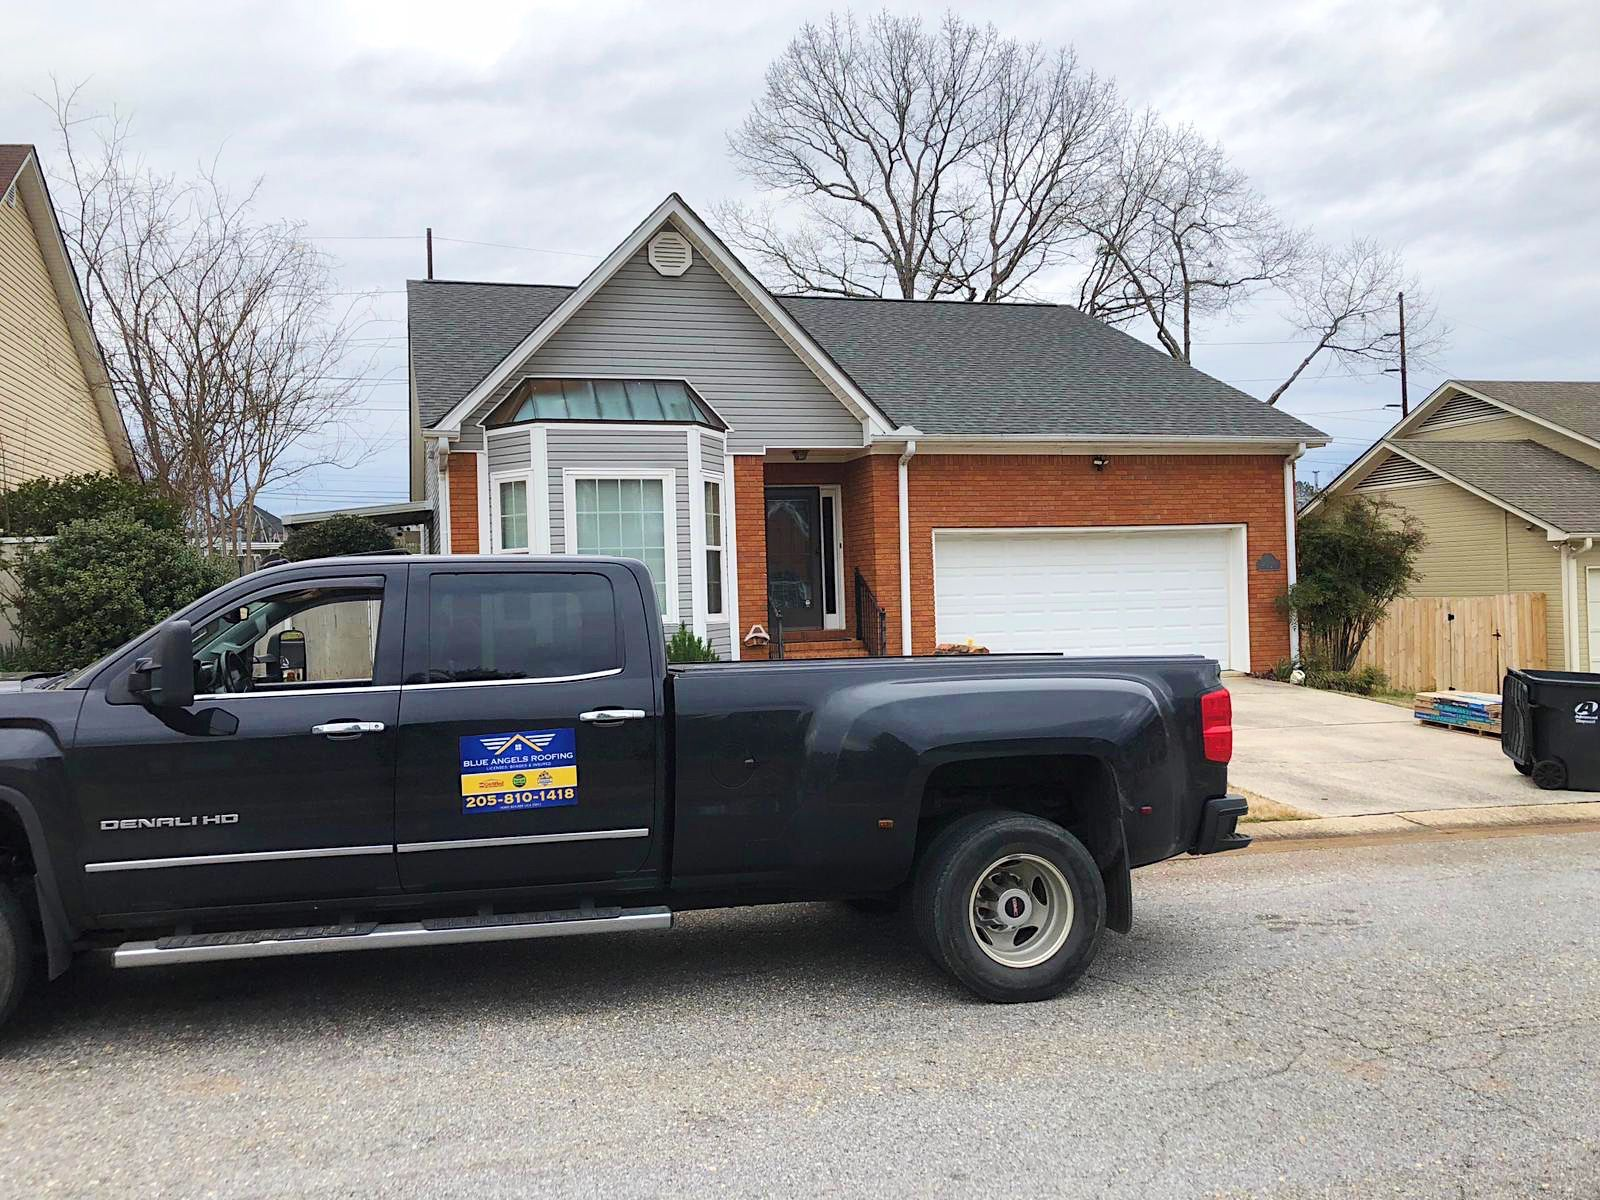 The Blue Angels Roofing Team Did A Great Job On This Pelham Roof We Take Pride In Offering The Best Service To Roofing Roofing Services State Farm Insurance